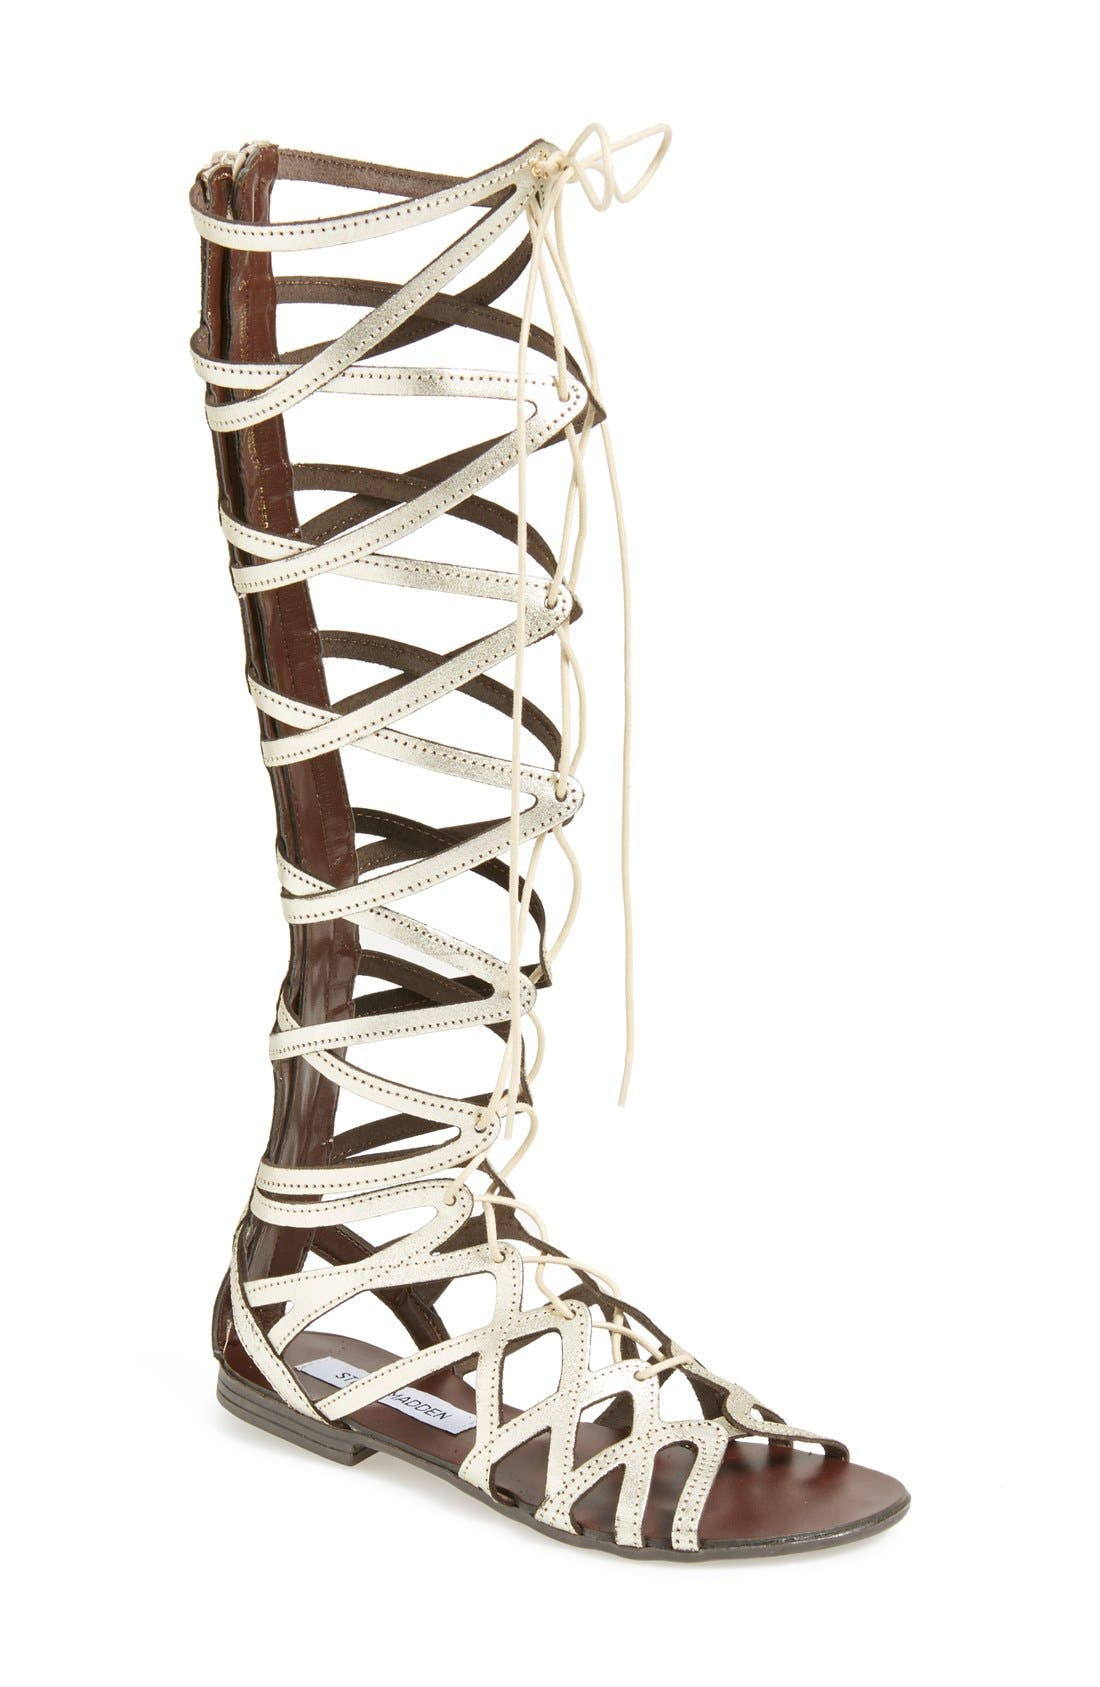 Alternate Image 1 Selected - Steve Madden 'Hercules' Gladiator Sandal (Women)